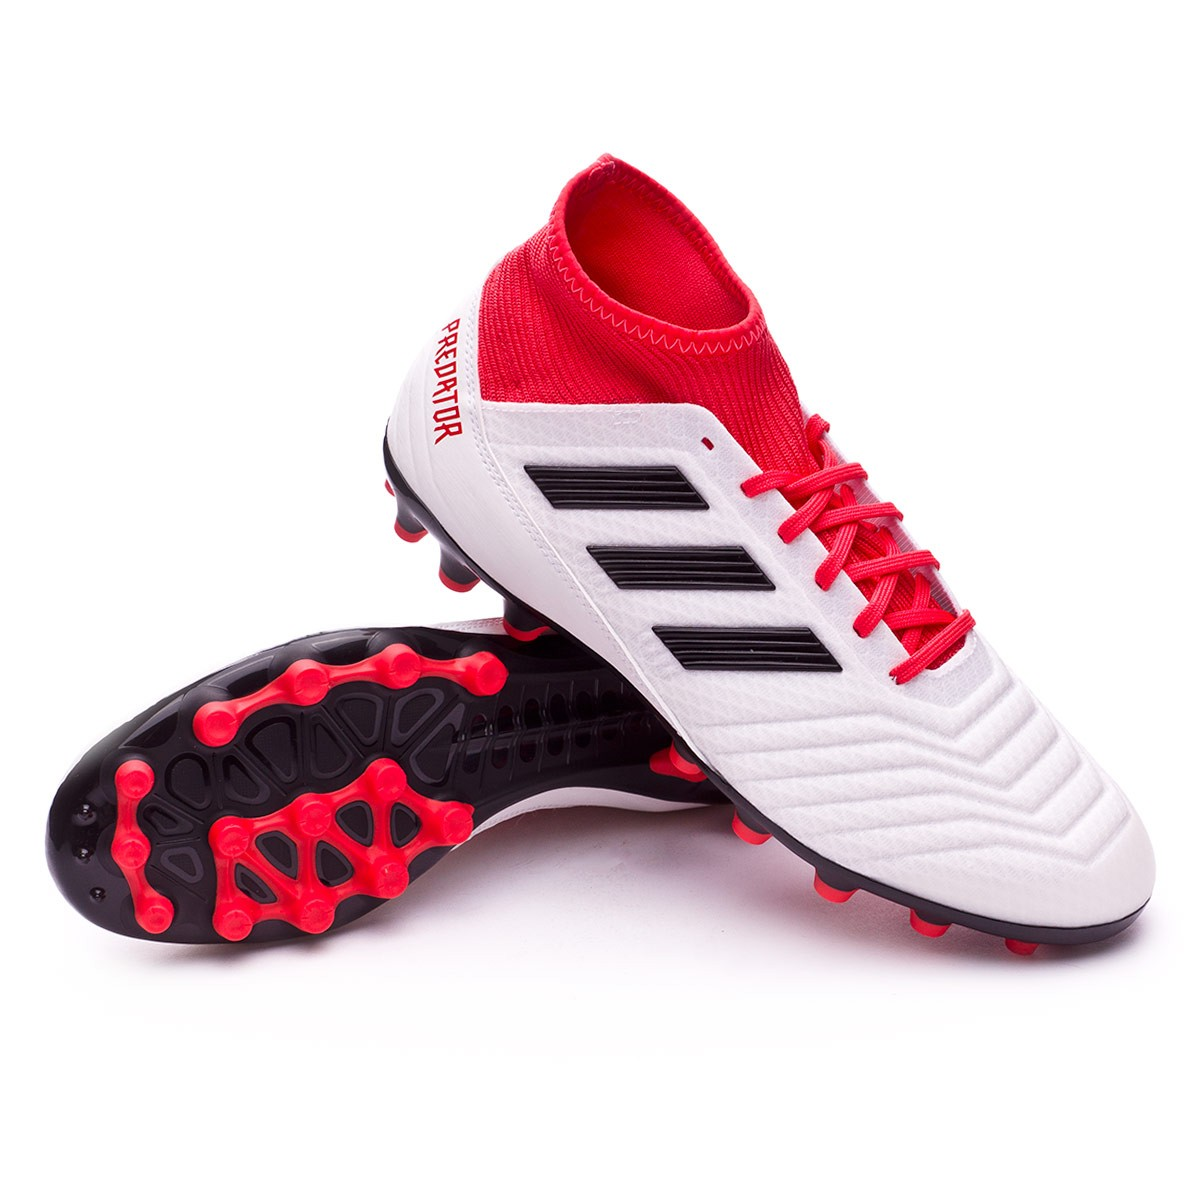 dbed815bf17 Football Boots adidas Predator 18.3 AG White-Core black-Real coral ...